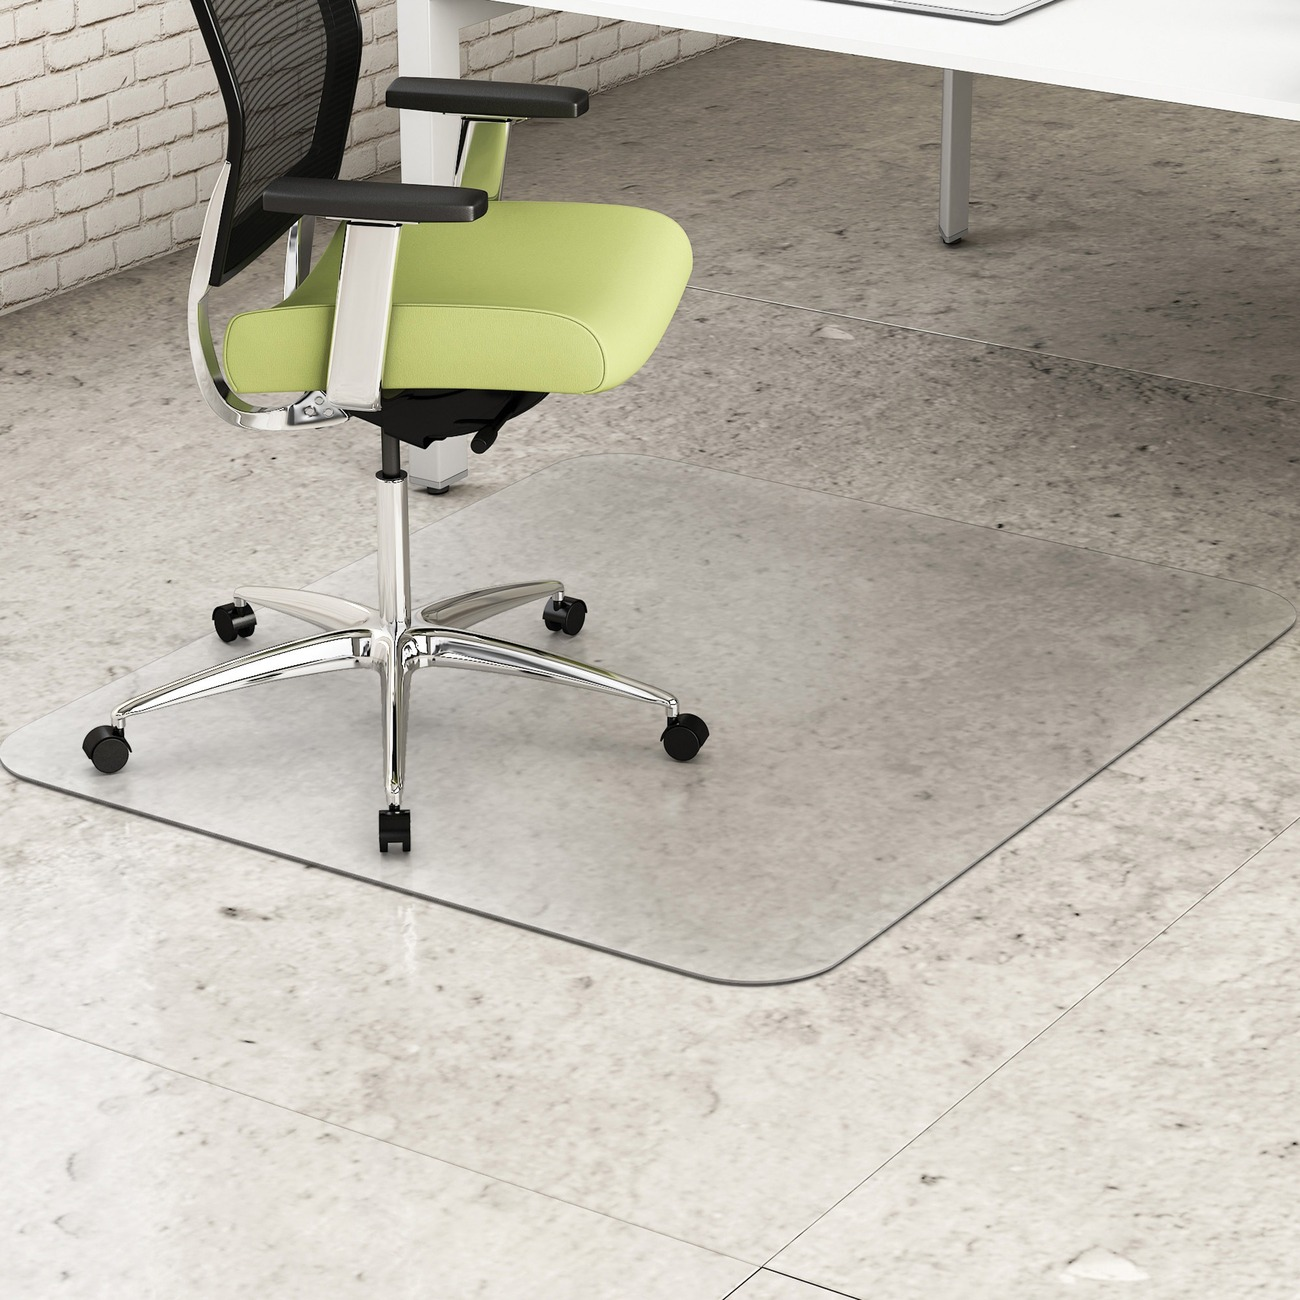 chair casters for tile floors image collections modern tile